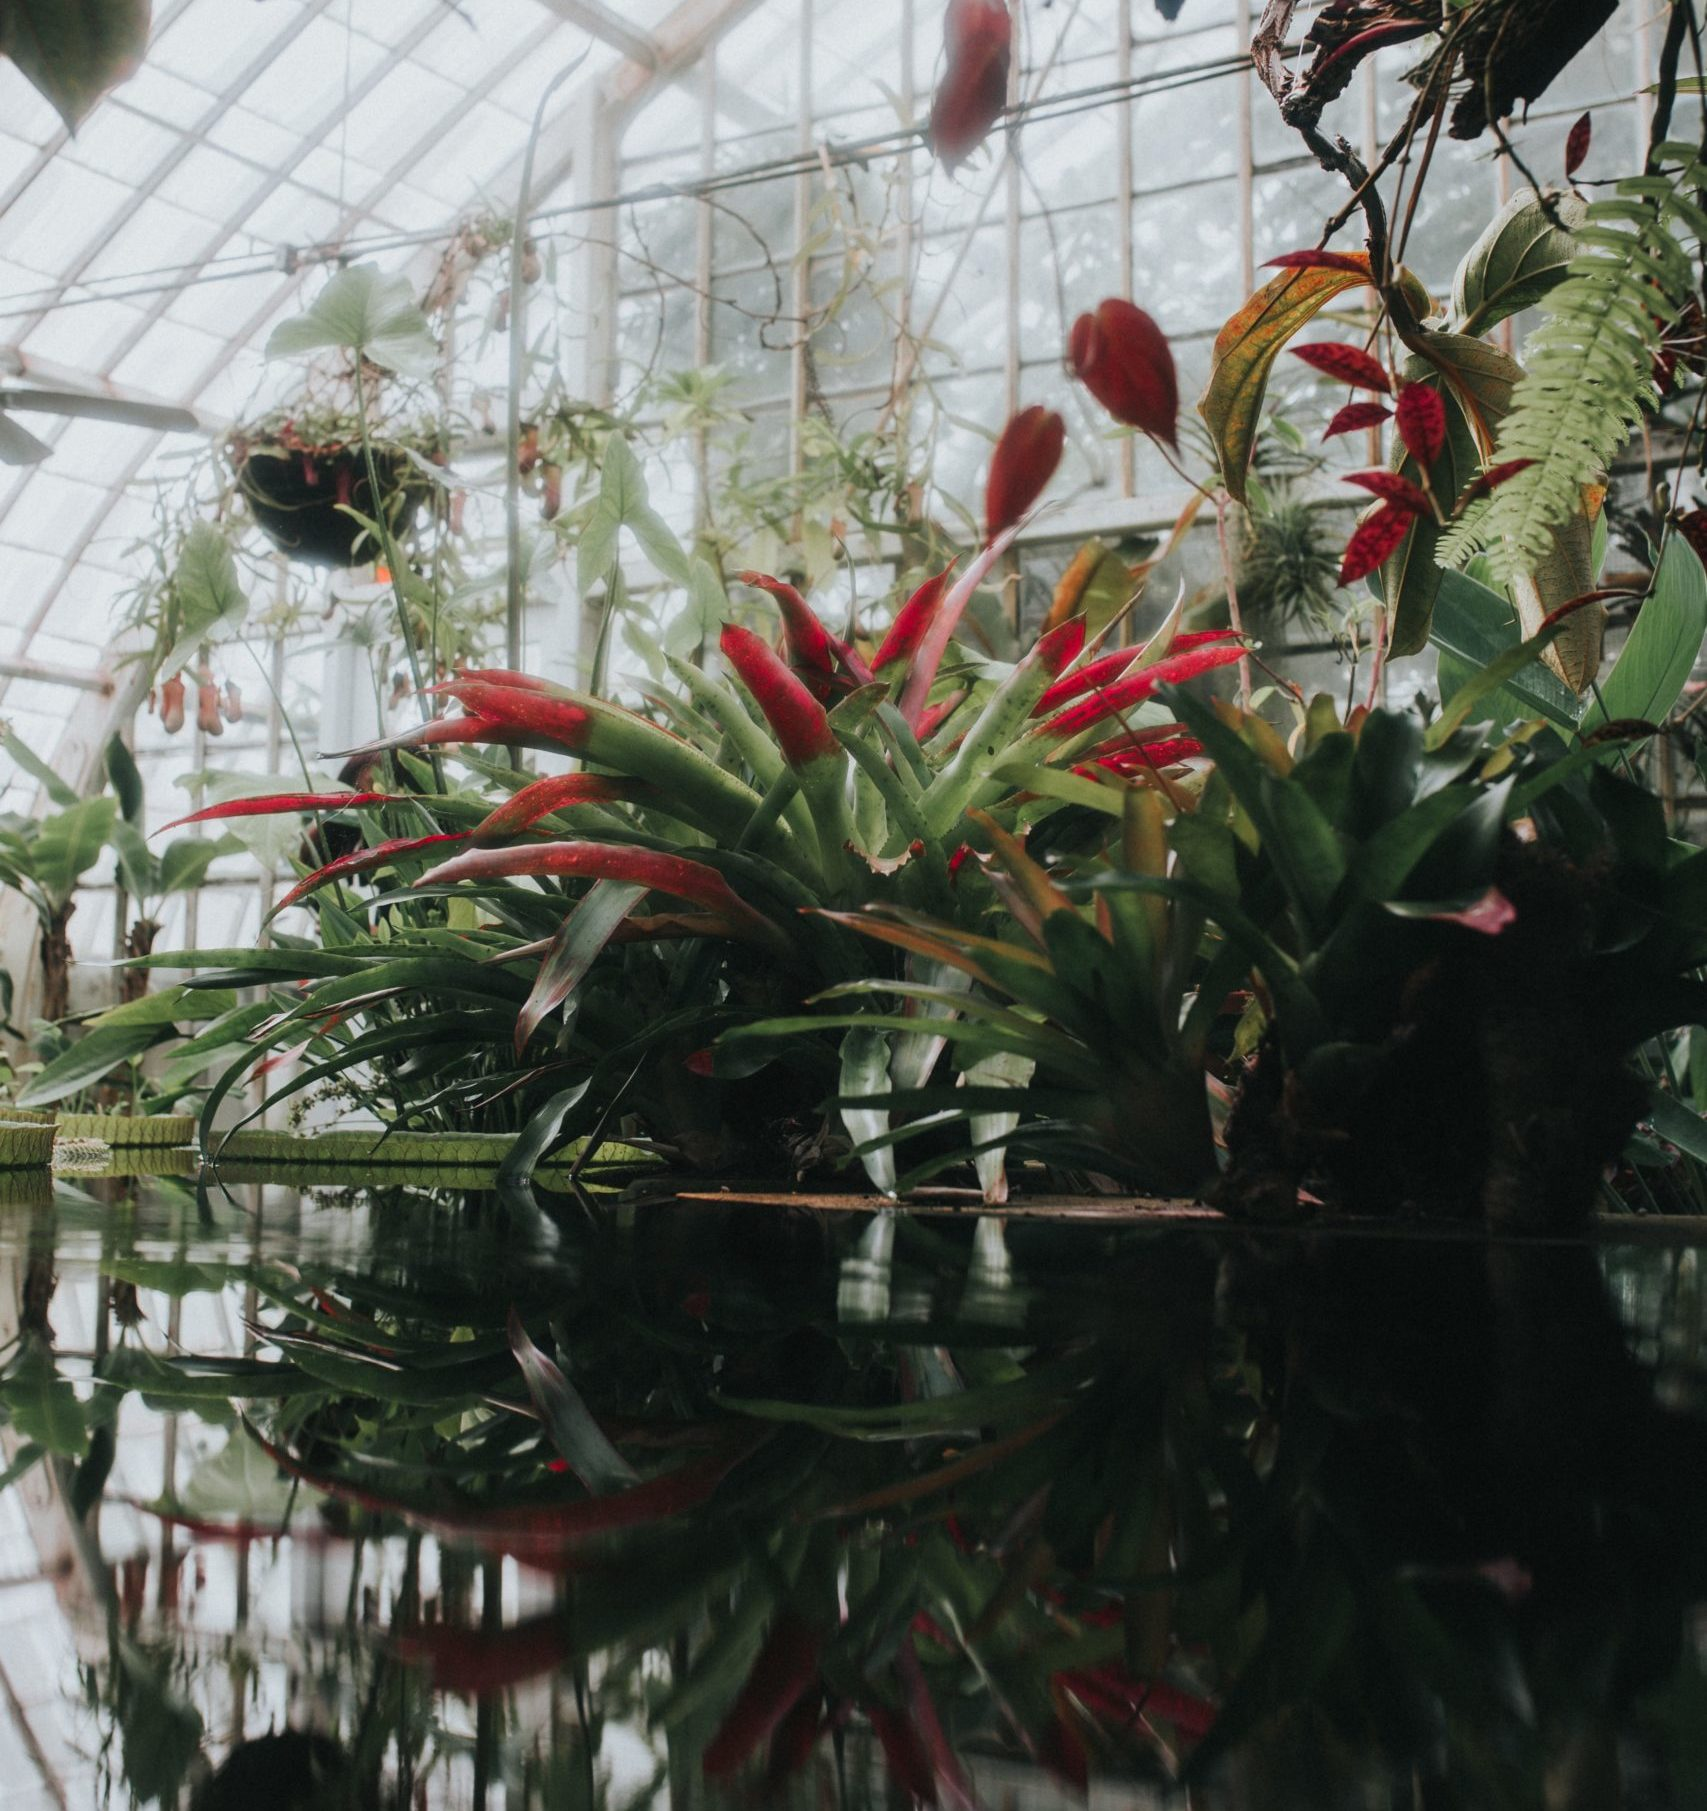 Another view of the Conservatory at Golden Gate Park